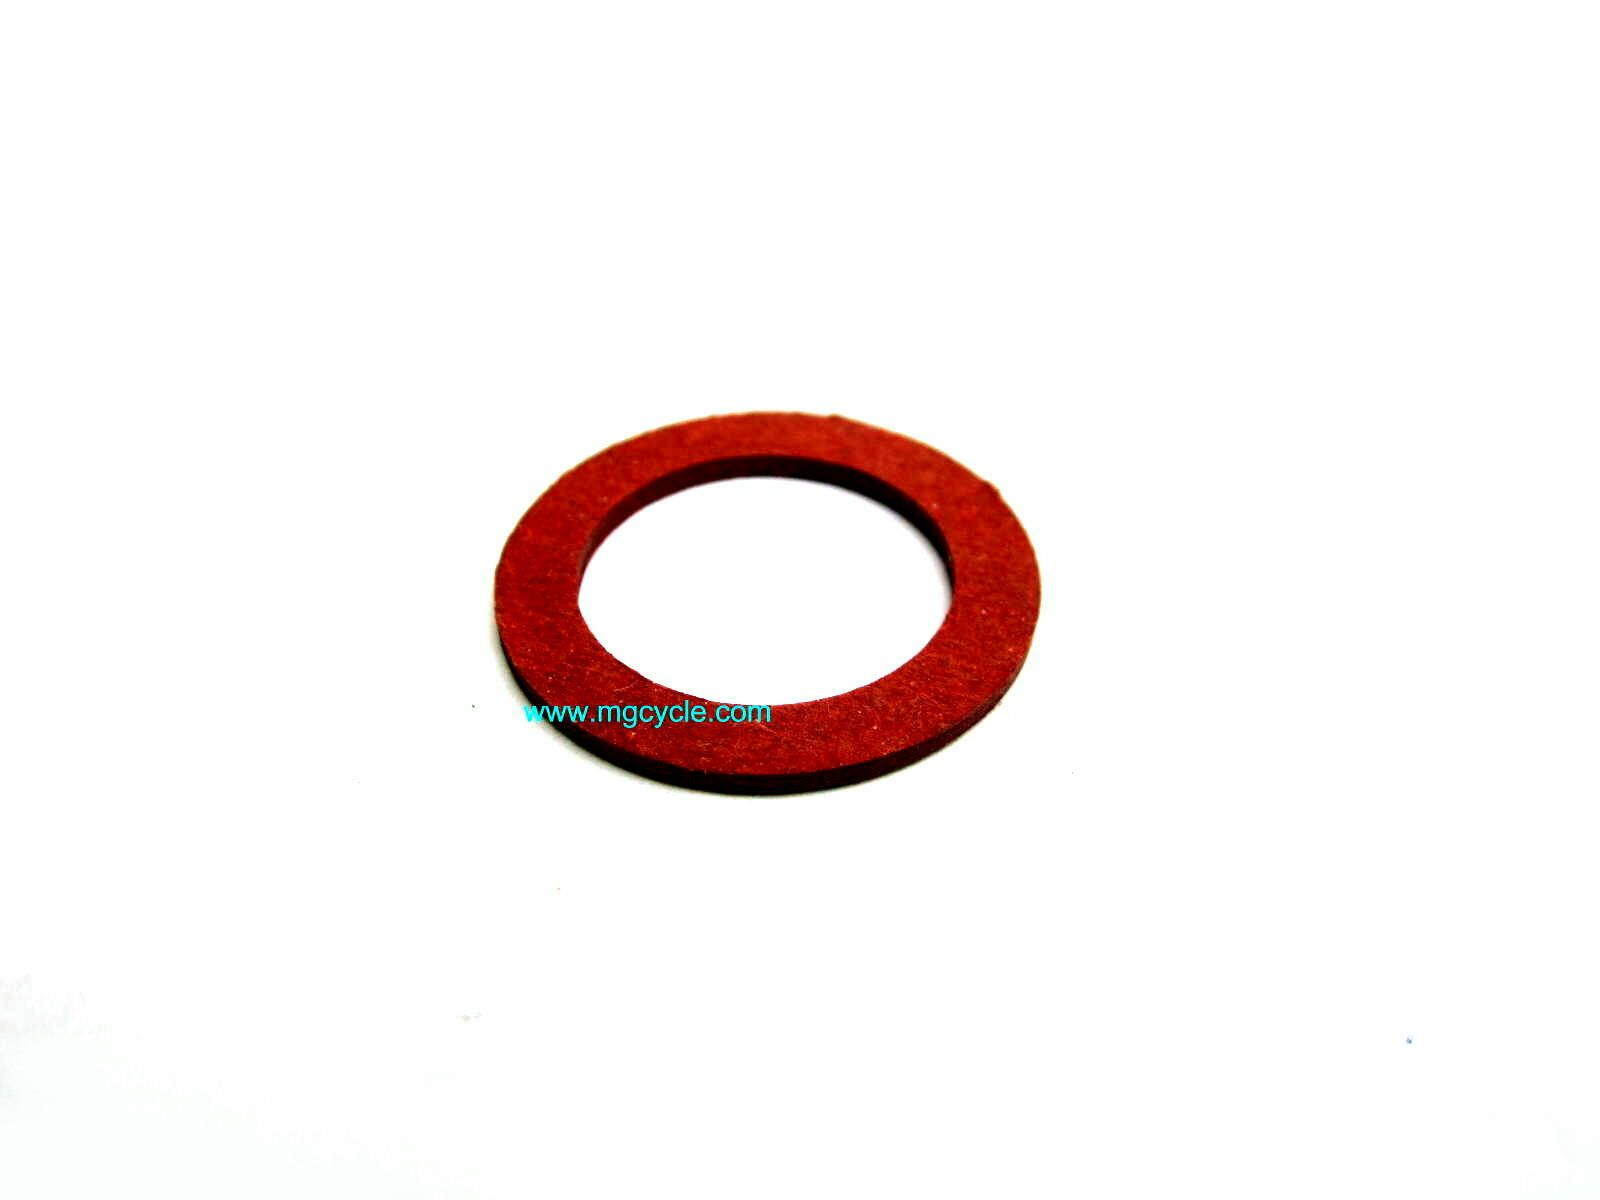 20mm fiber sealing washer, fill drain plugs, PHM bowl nut gasket